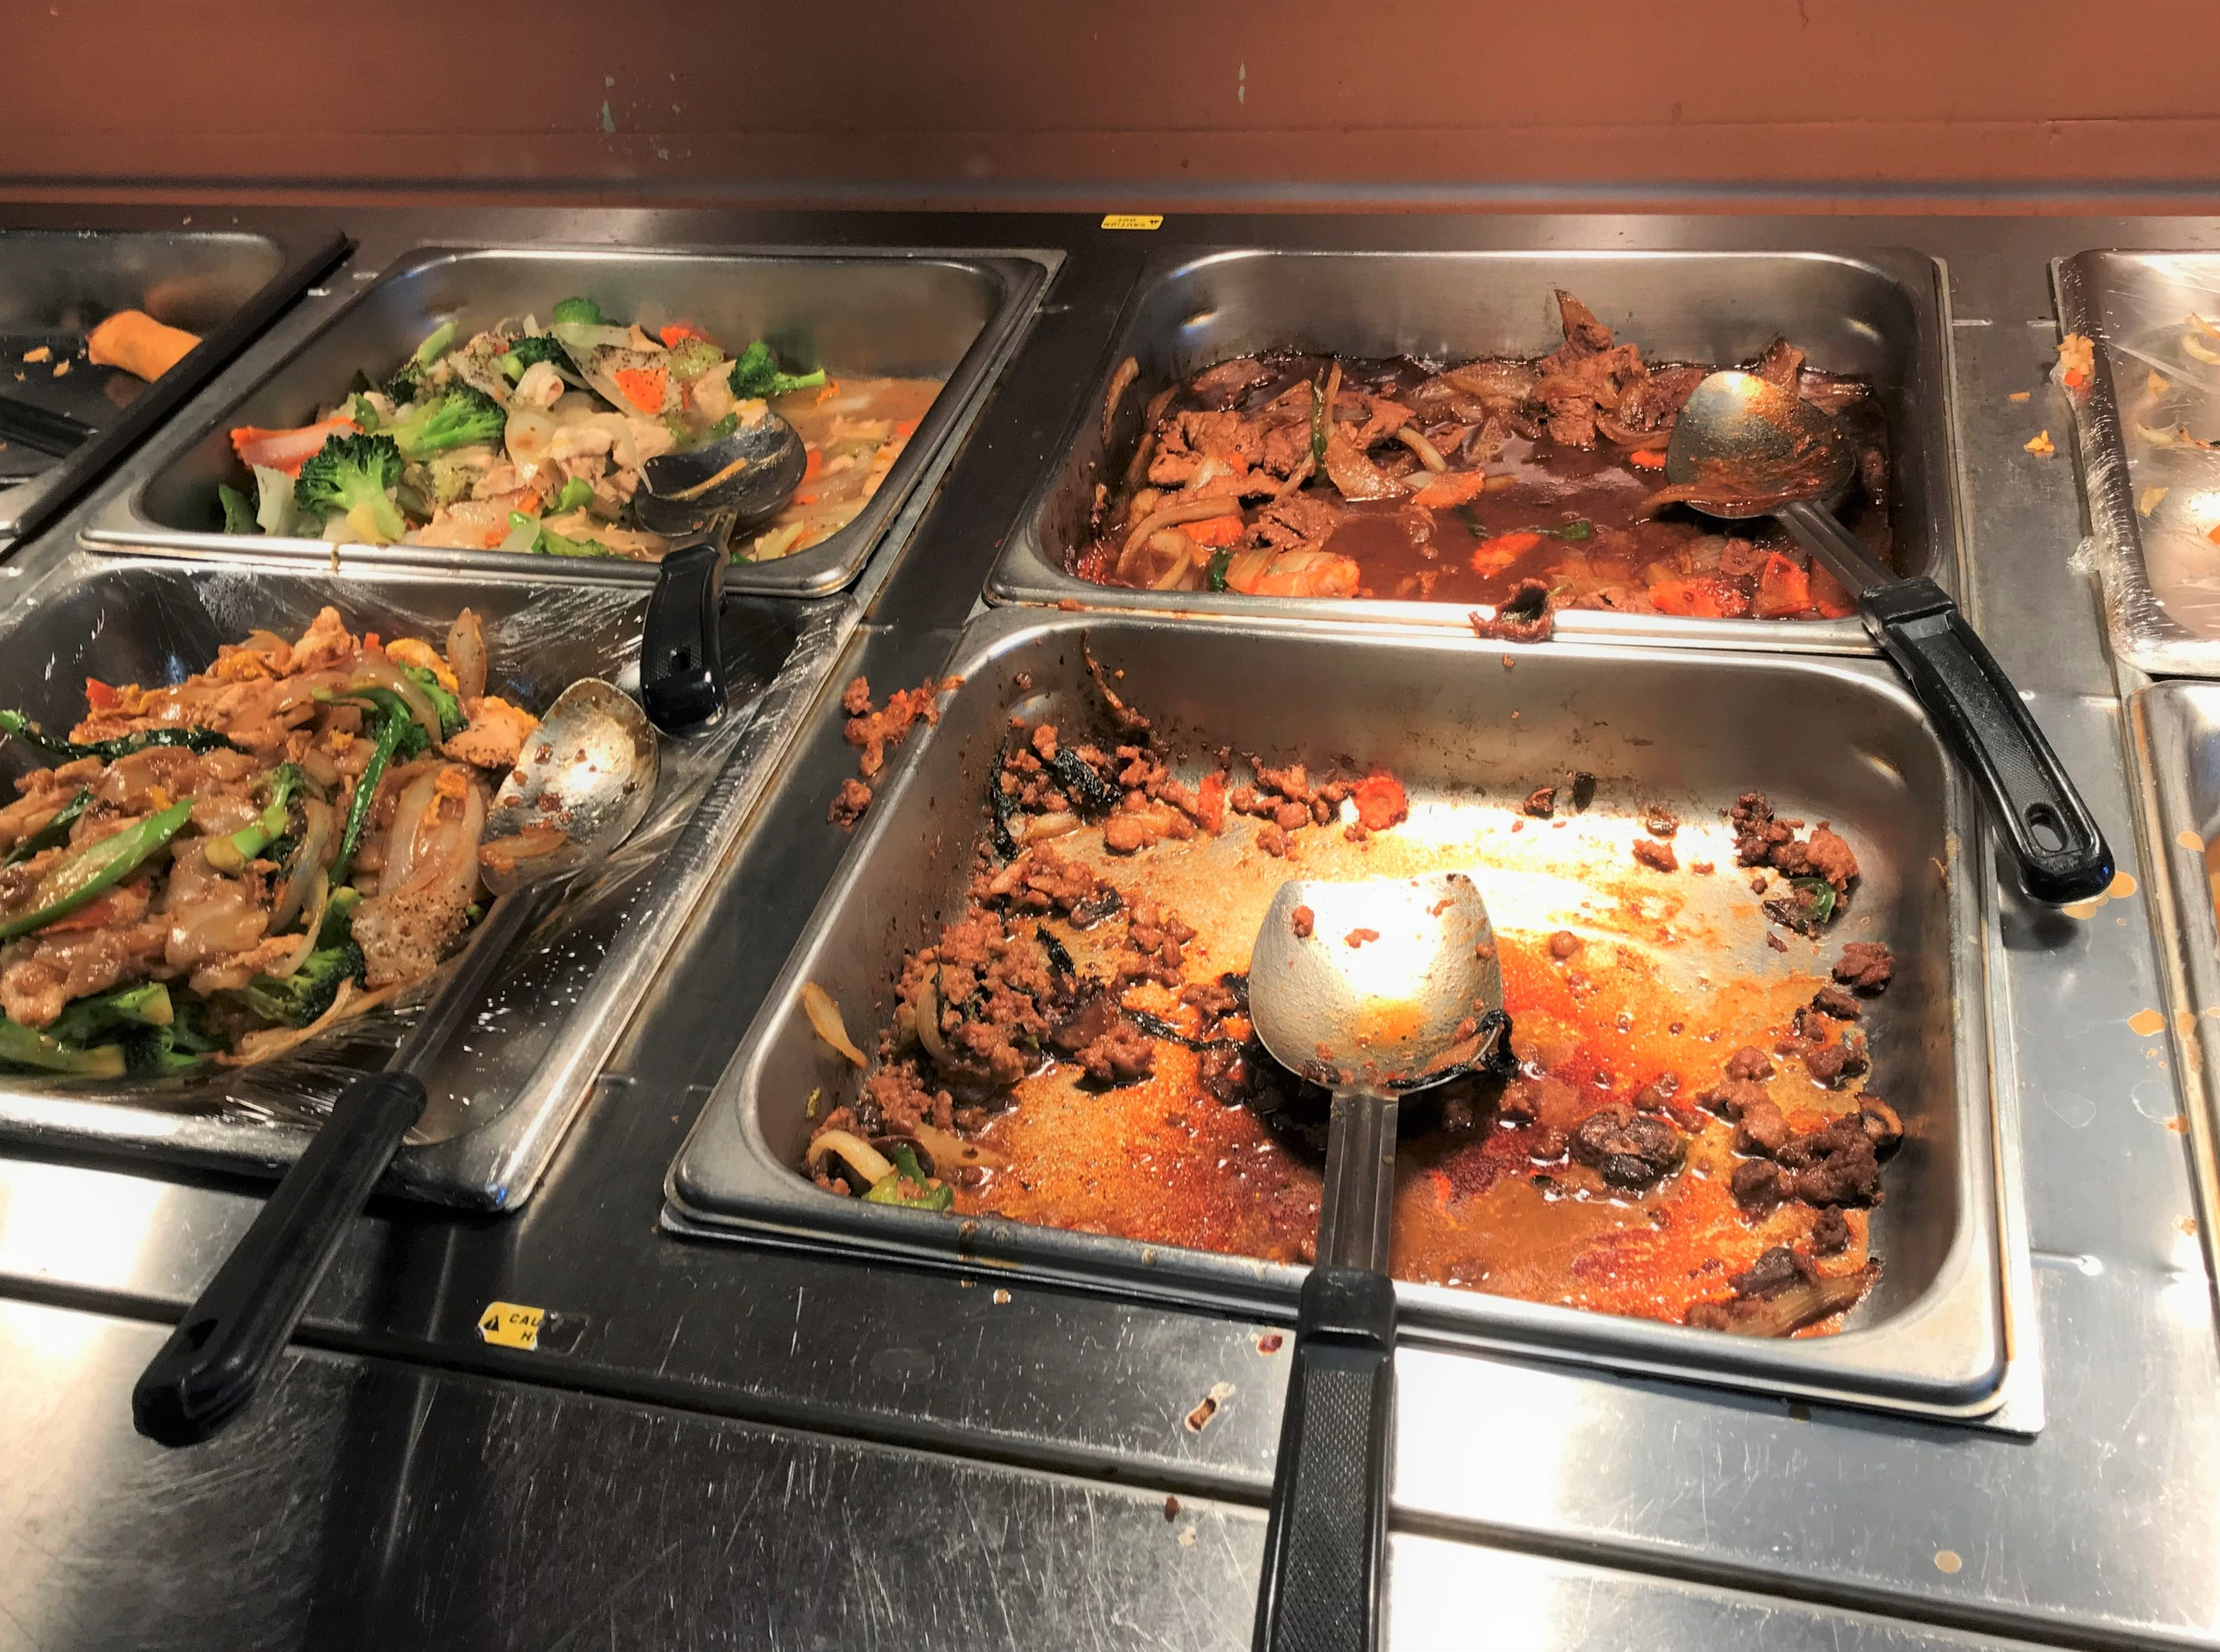 Sneak peek of the lunch buffet at Toy's Thai Restaurant on Friday, January 4, 2019, in Sheboygan, Wis.